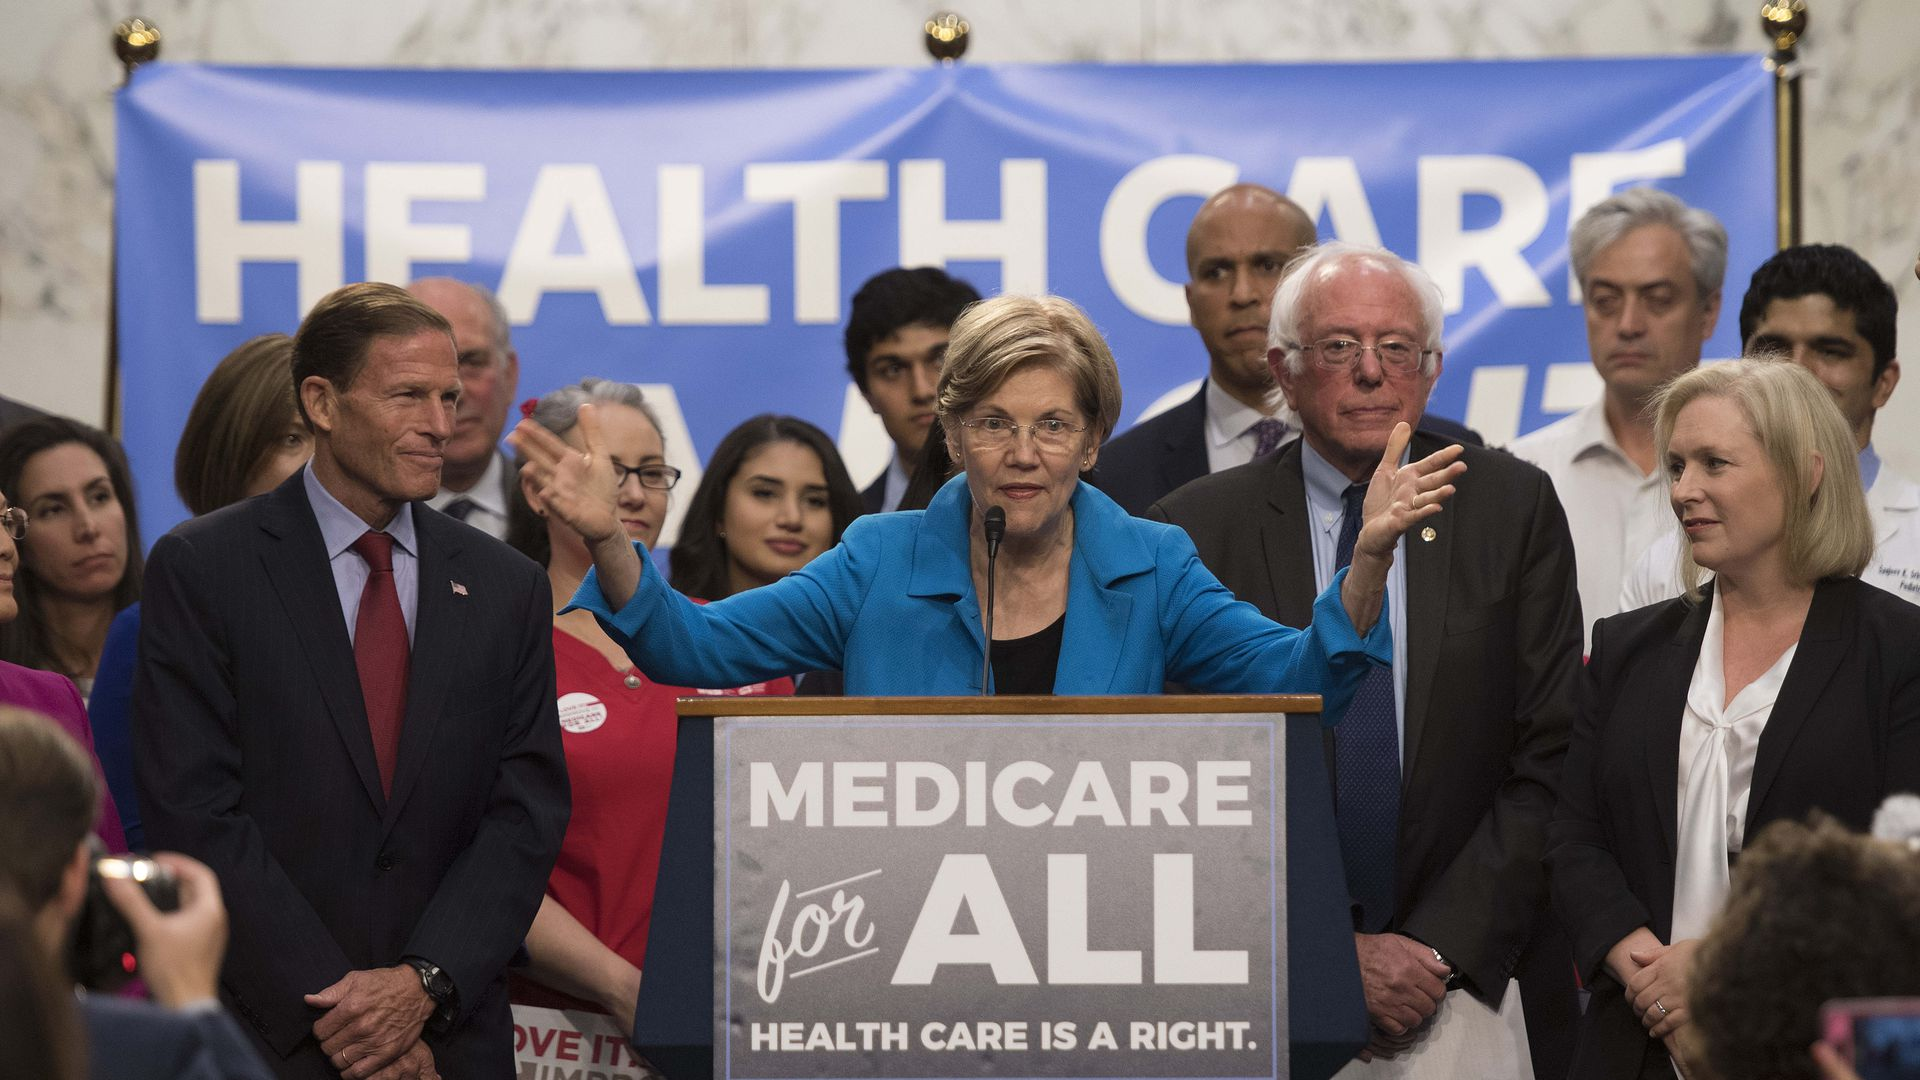 Democrats unveiling a Medicare for All platform.